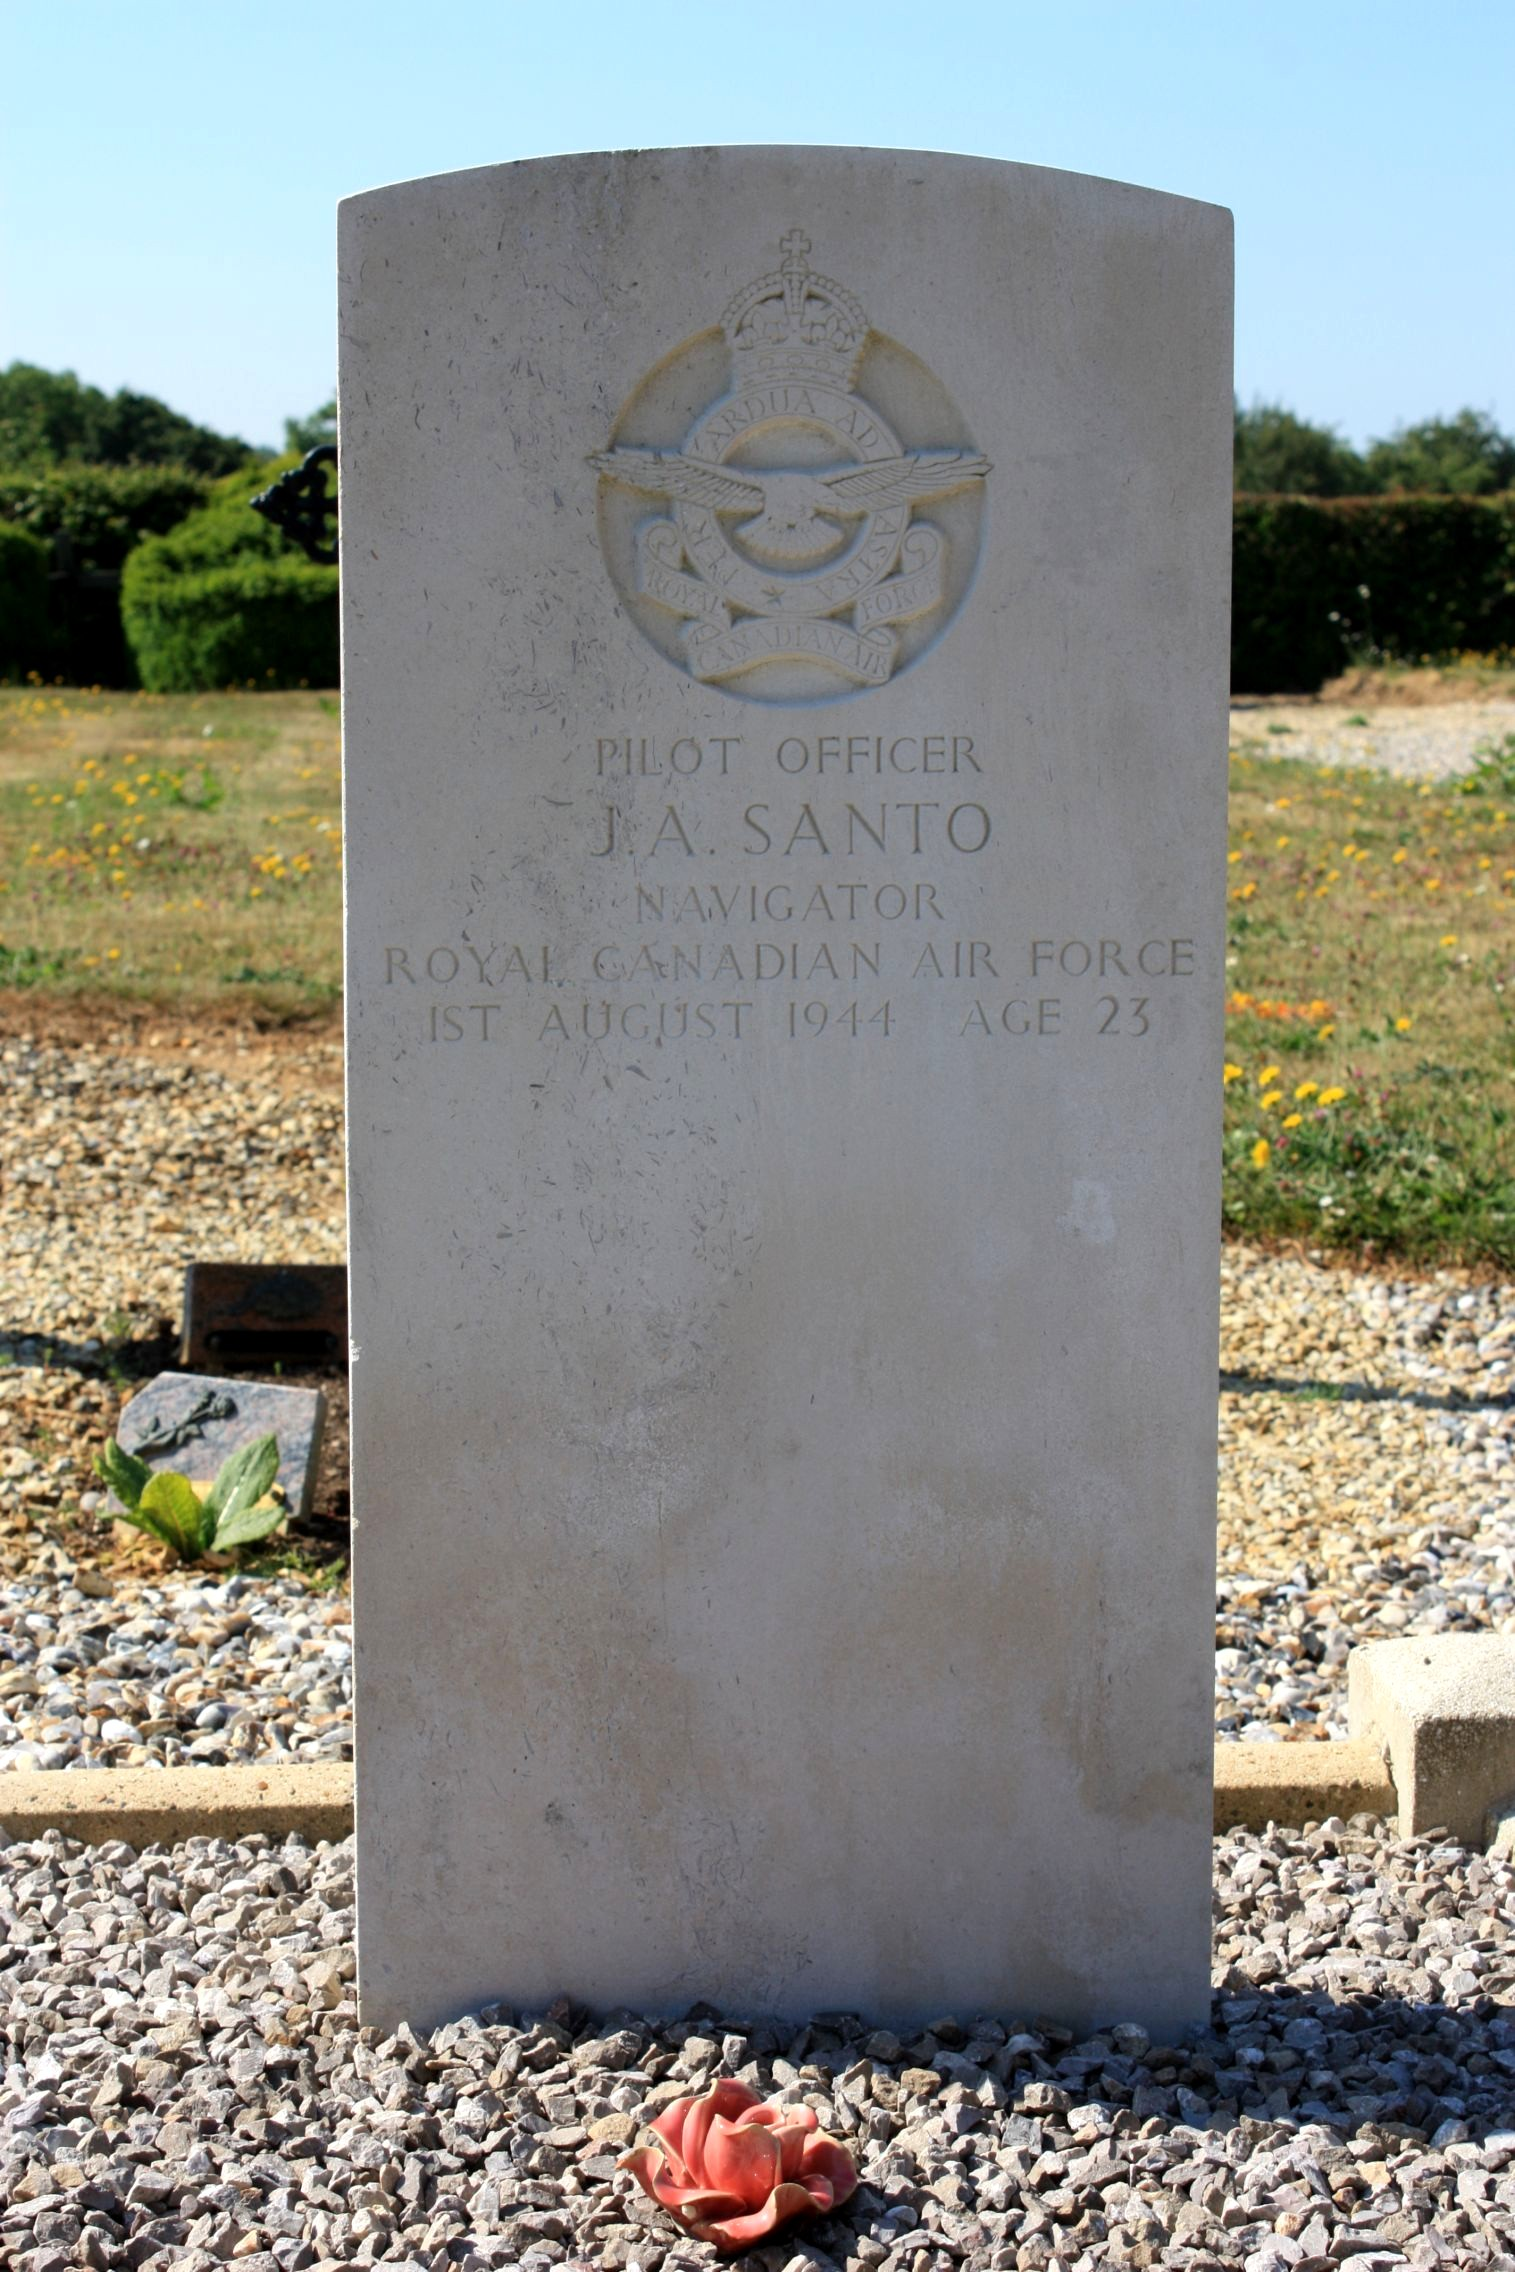 Grave Marker – Photo of grave marker courtesy of Kelvin Youngs, Aircrew Remembered